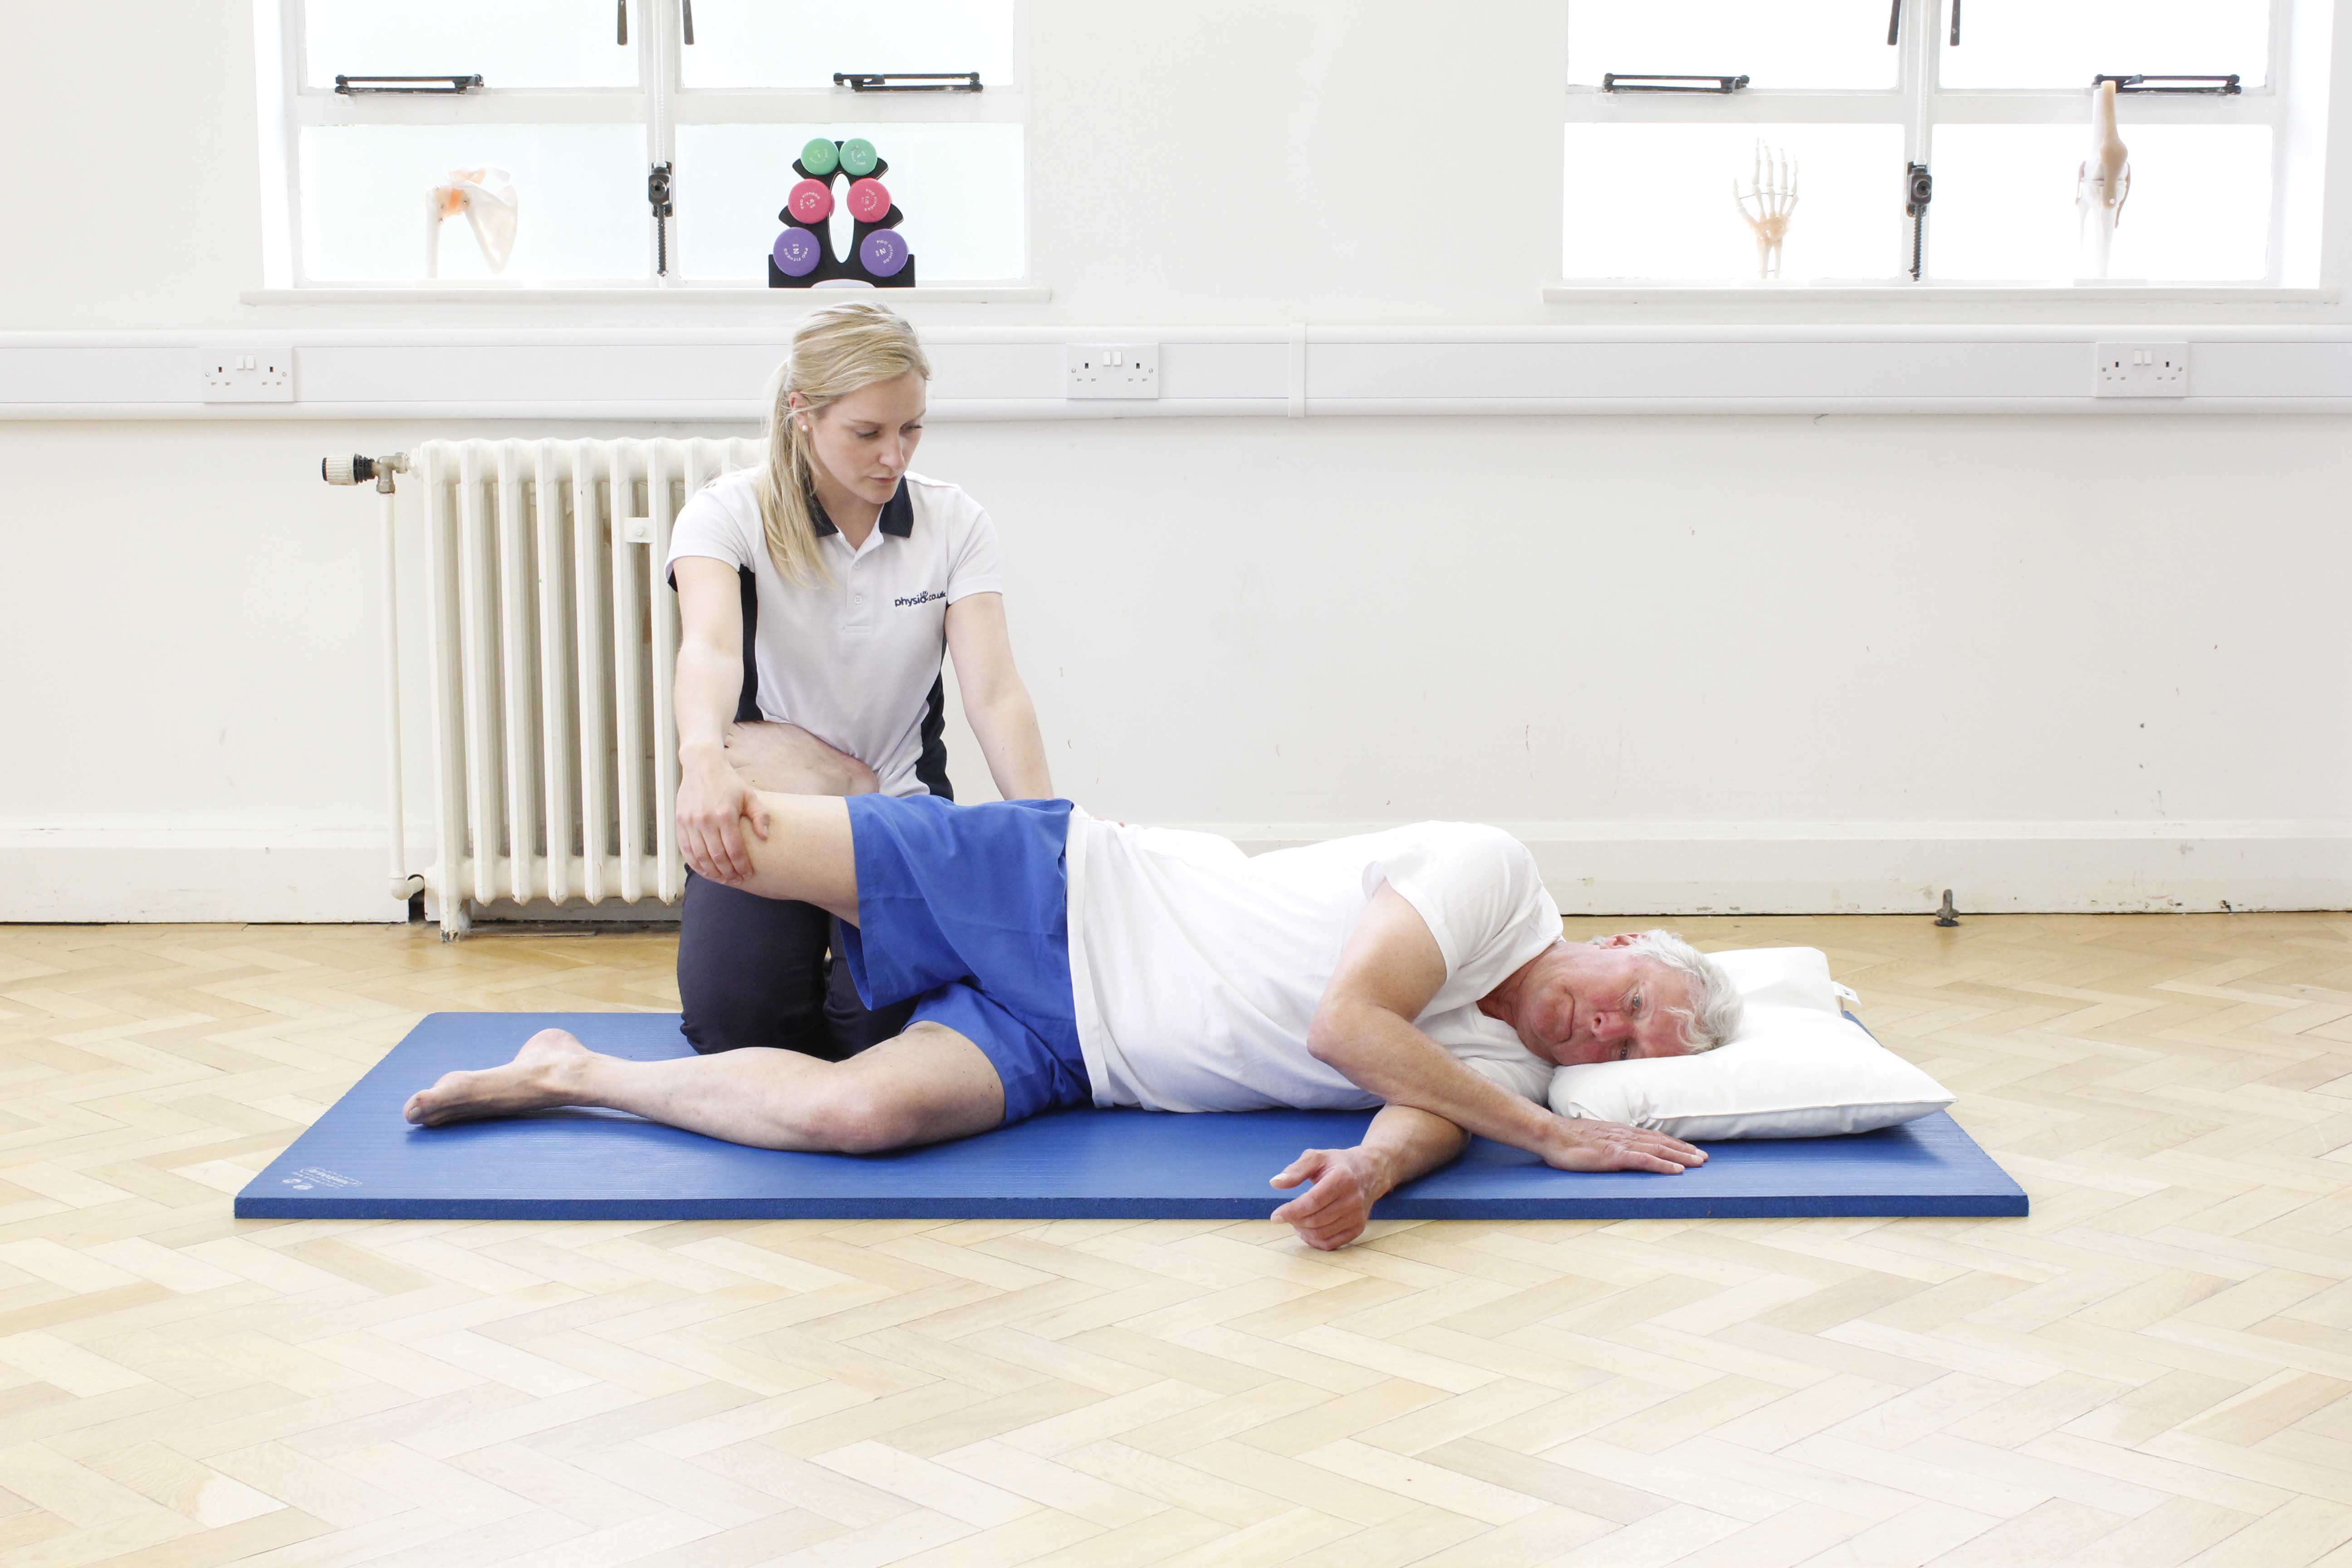 mobilisations and stretches of the foot and ankle to lower tone and reduce involuntary contractions